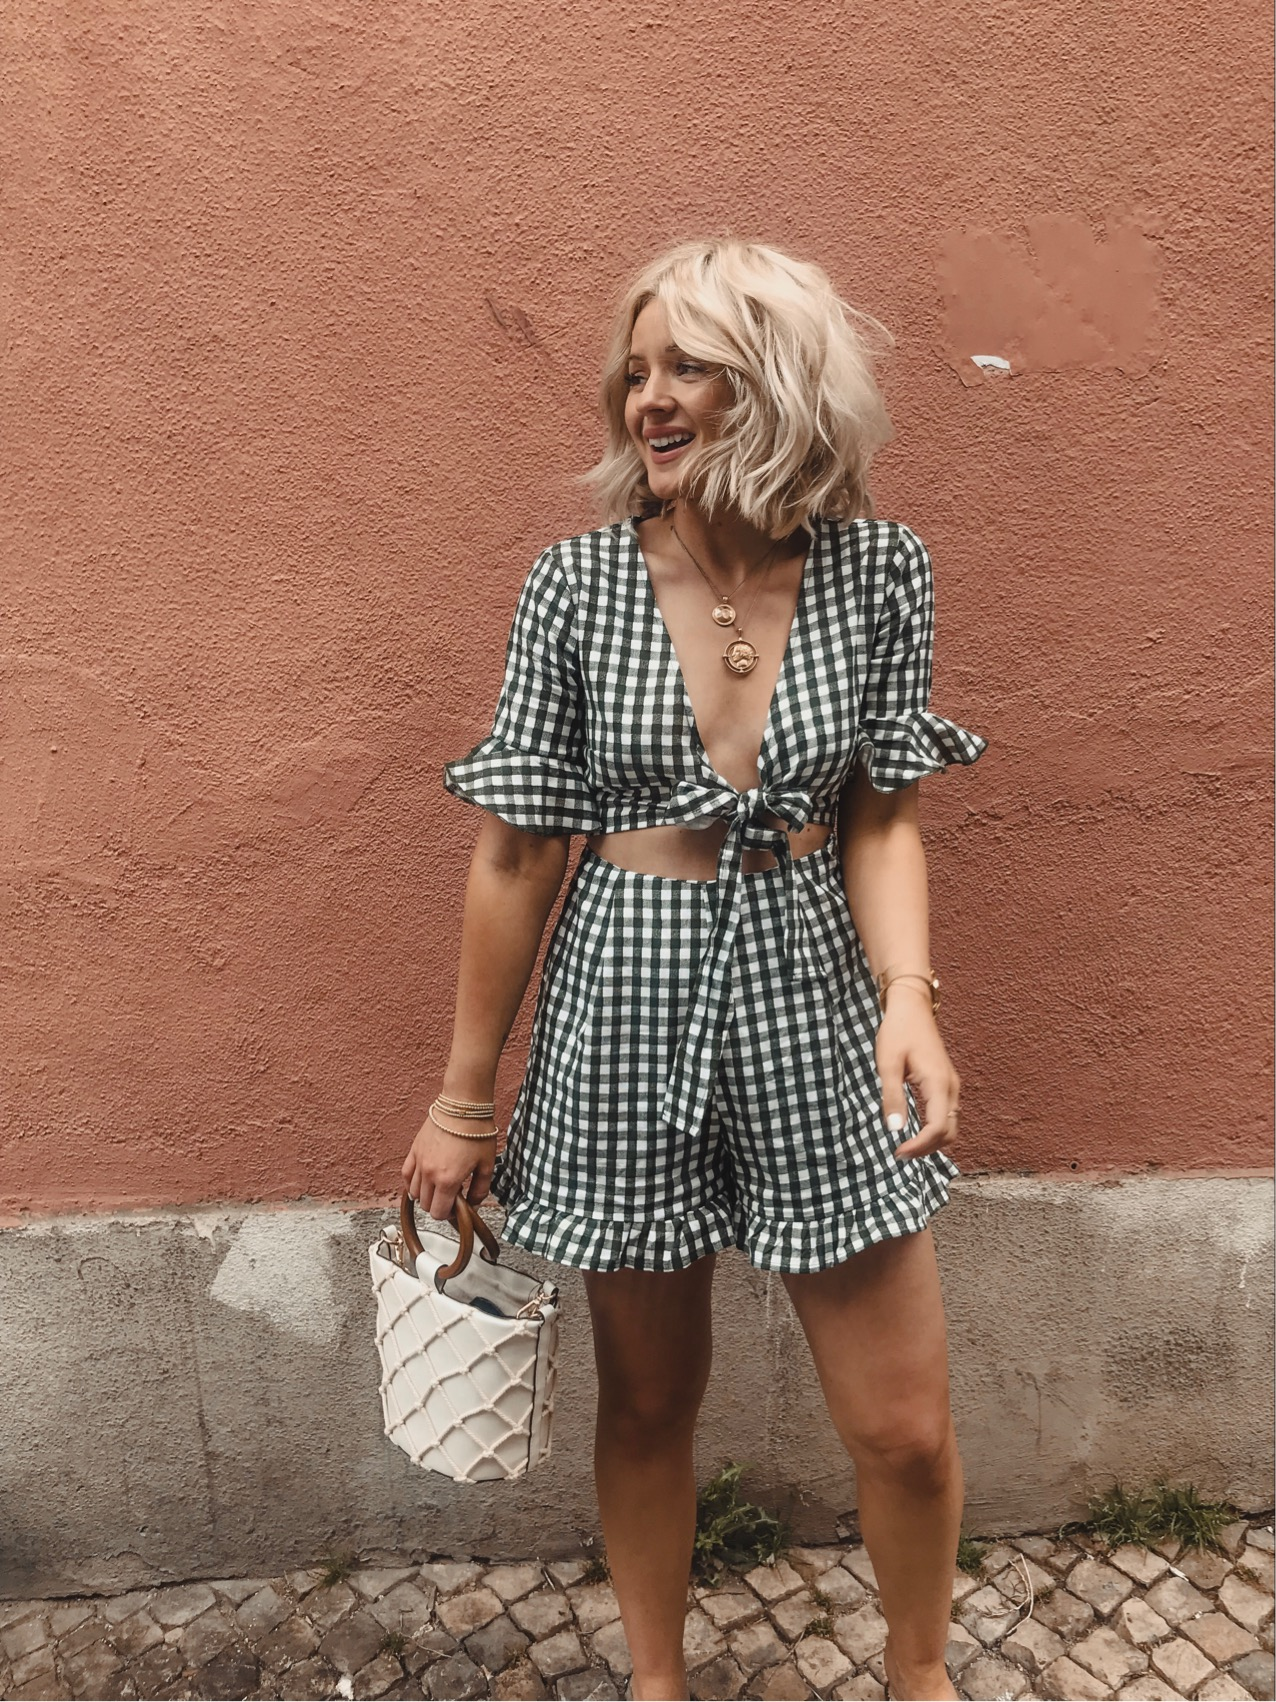 THE PLAYSUIT YOU NEED FOR SUMMER